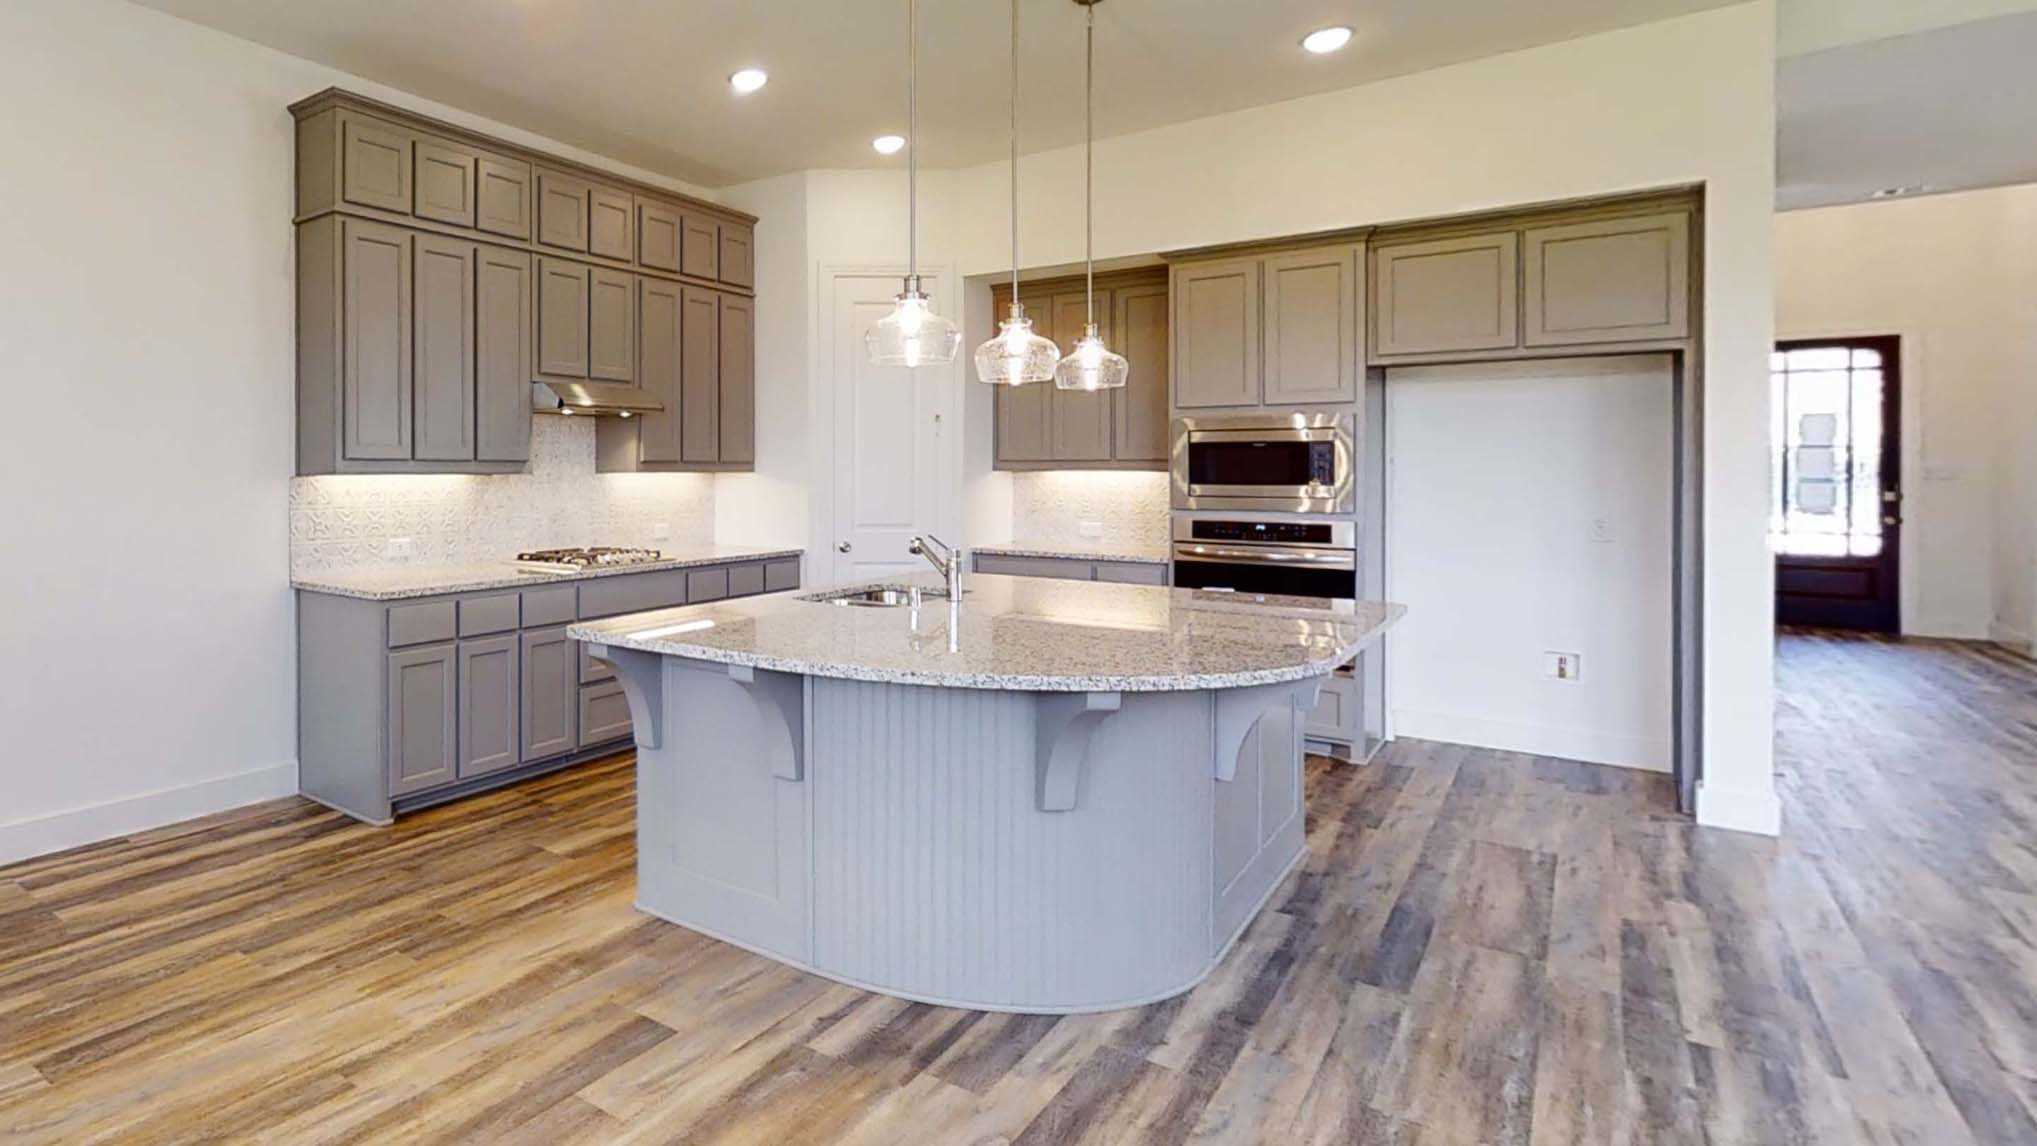 Kitchen featured in the Plan Blenheim By Highland Homes in Dallas, TX